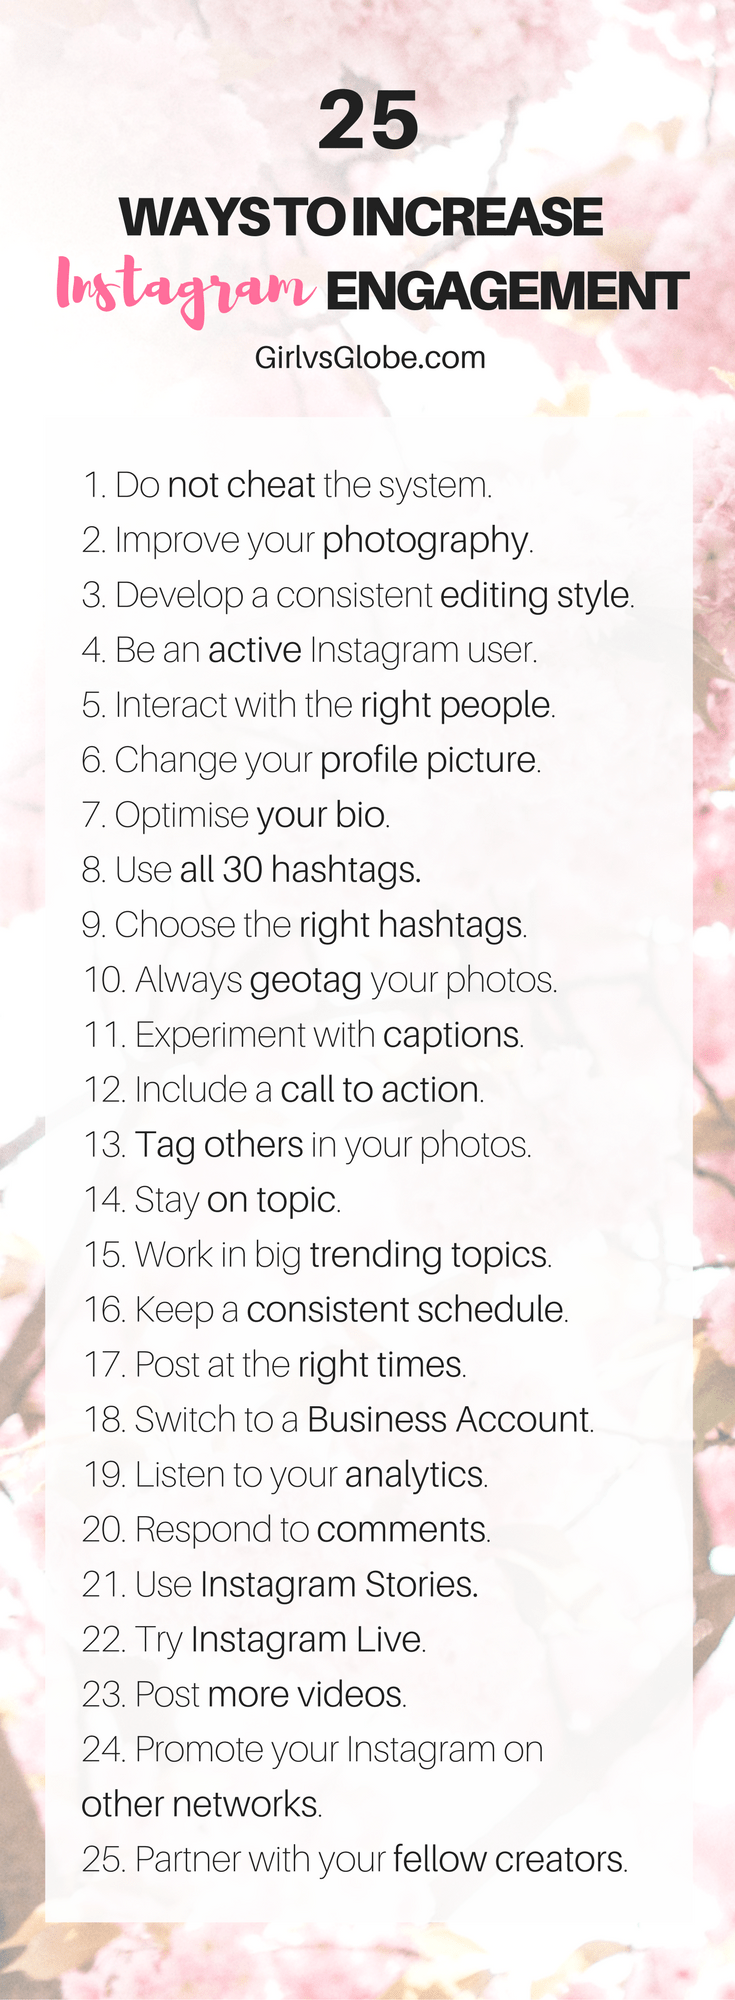 increase Instagram engagement infographic